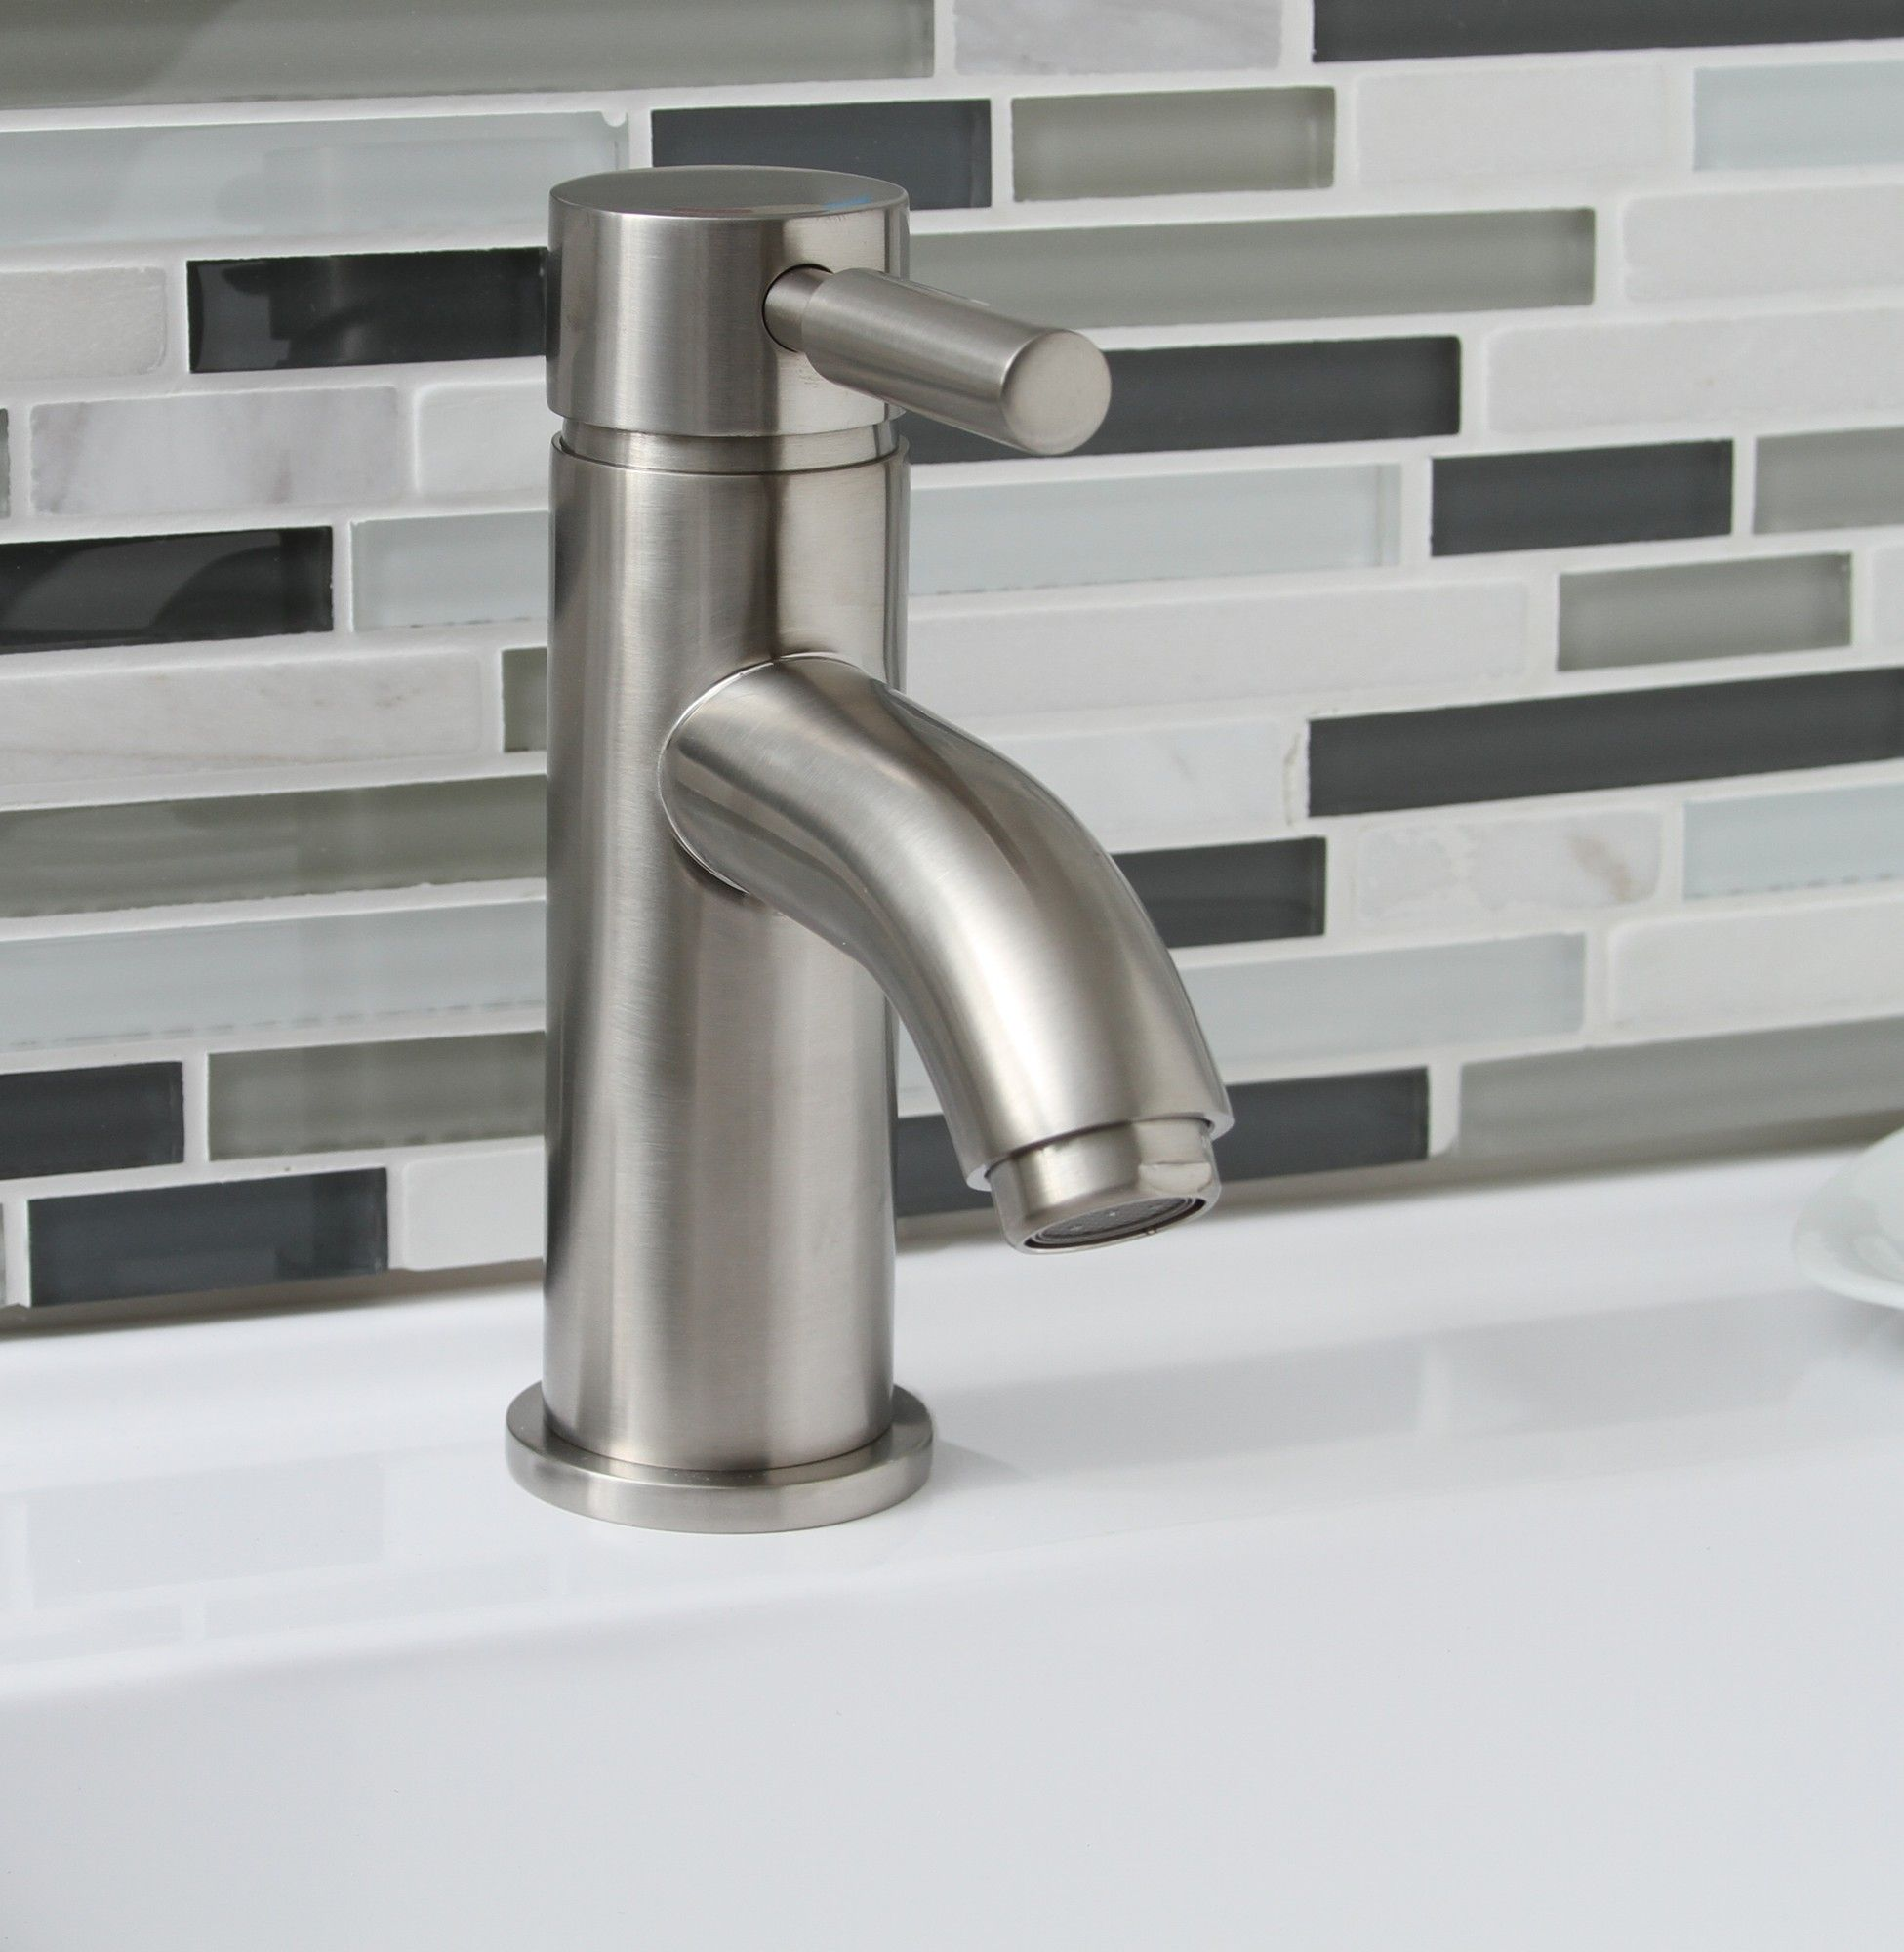 Premier Faucet Essen Single Handle Bathroom Faucet & Reviews ...